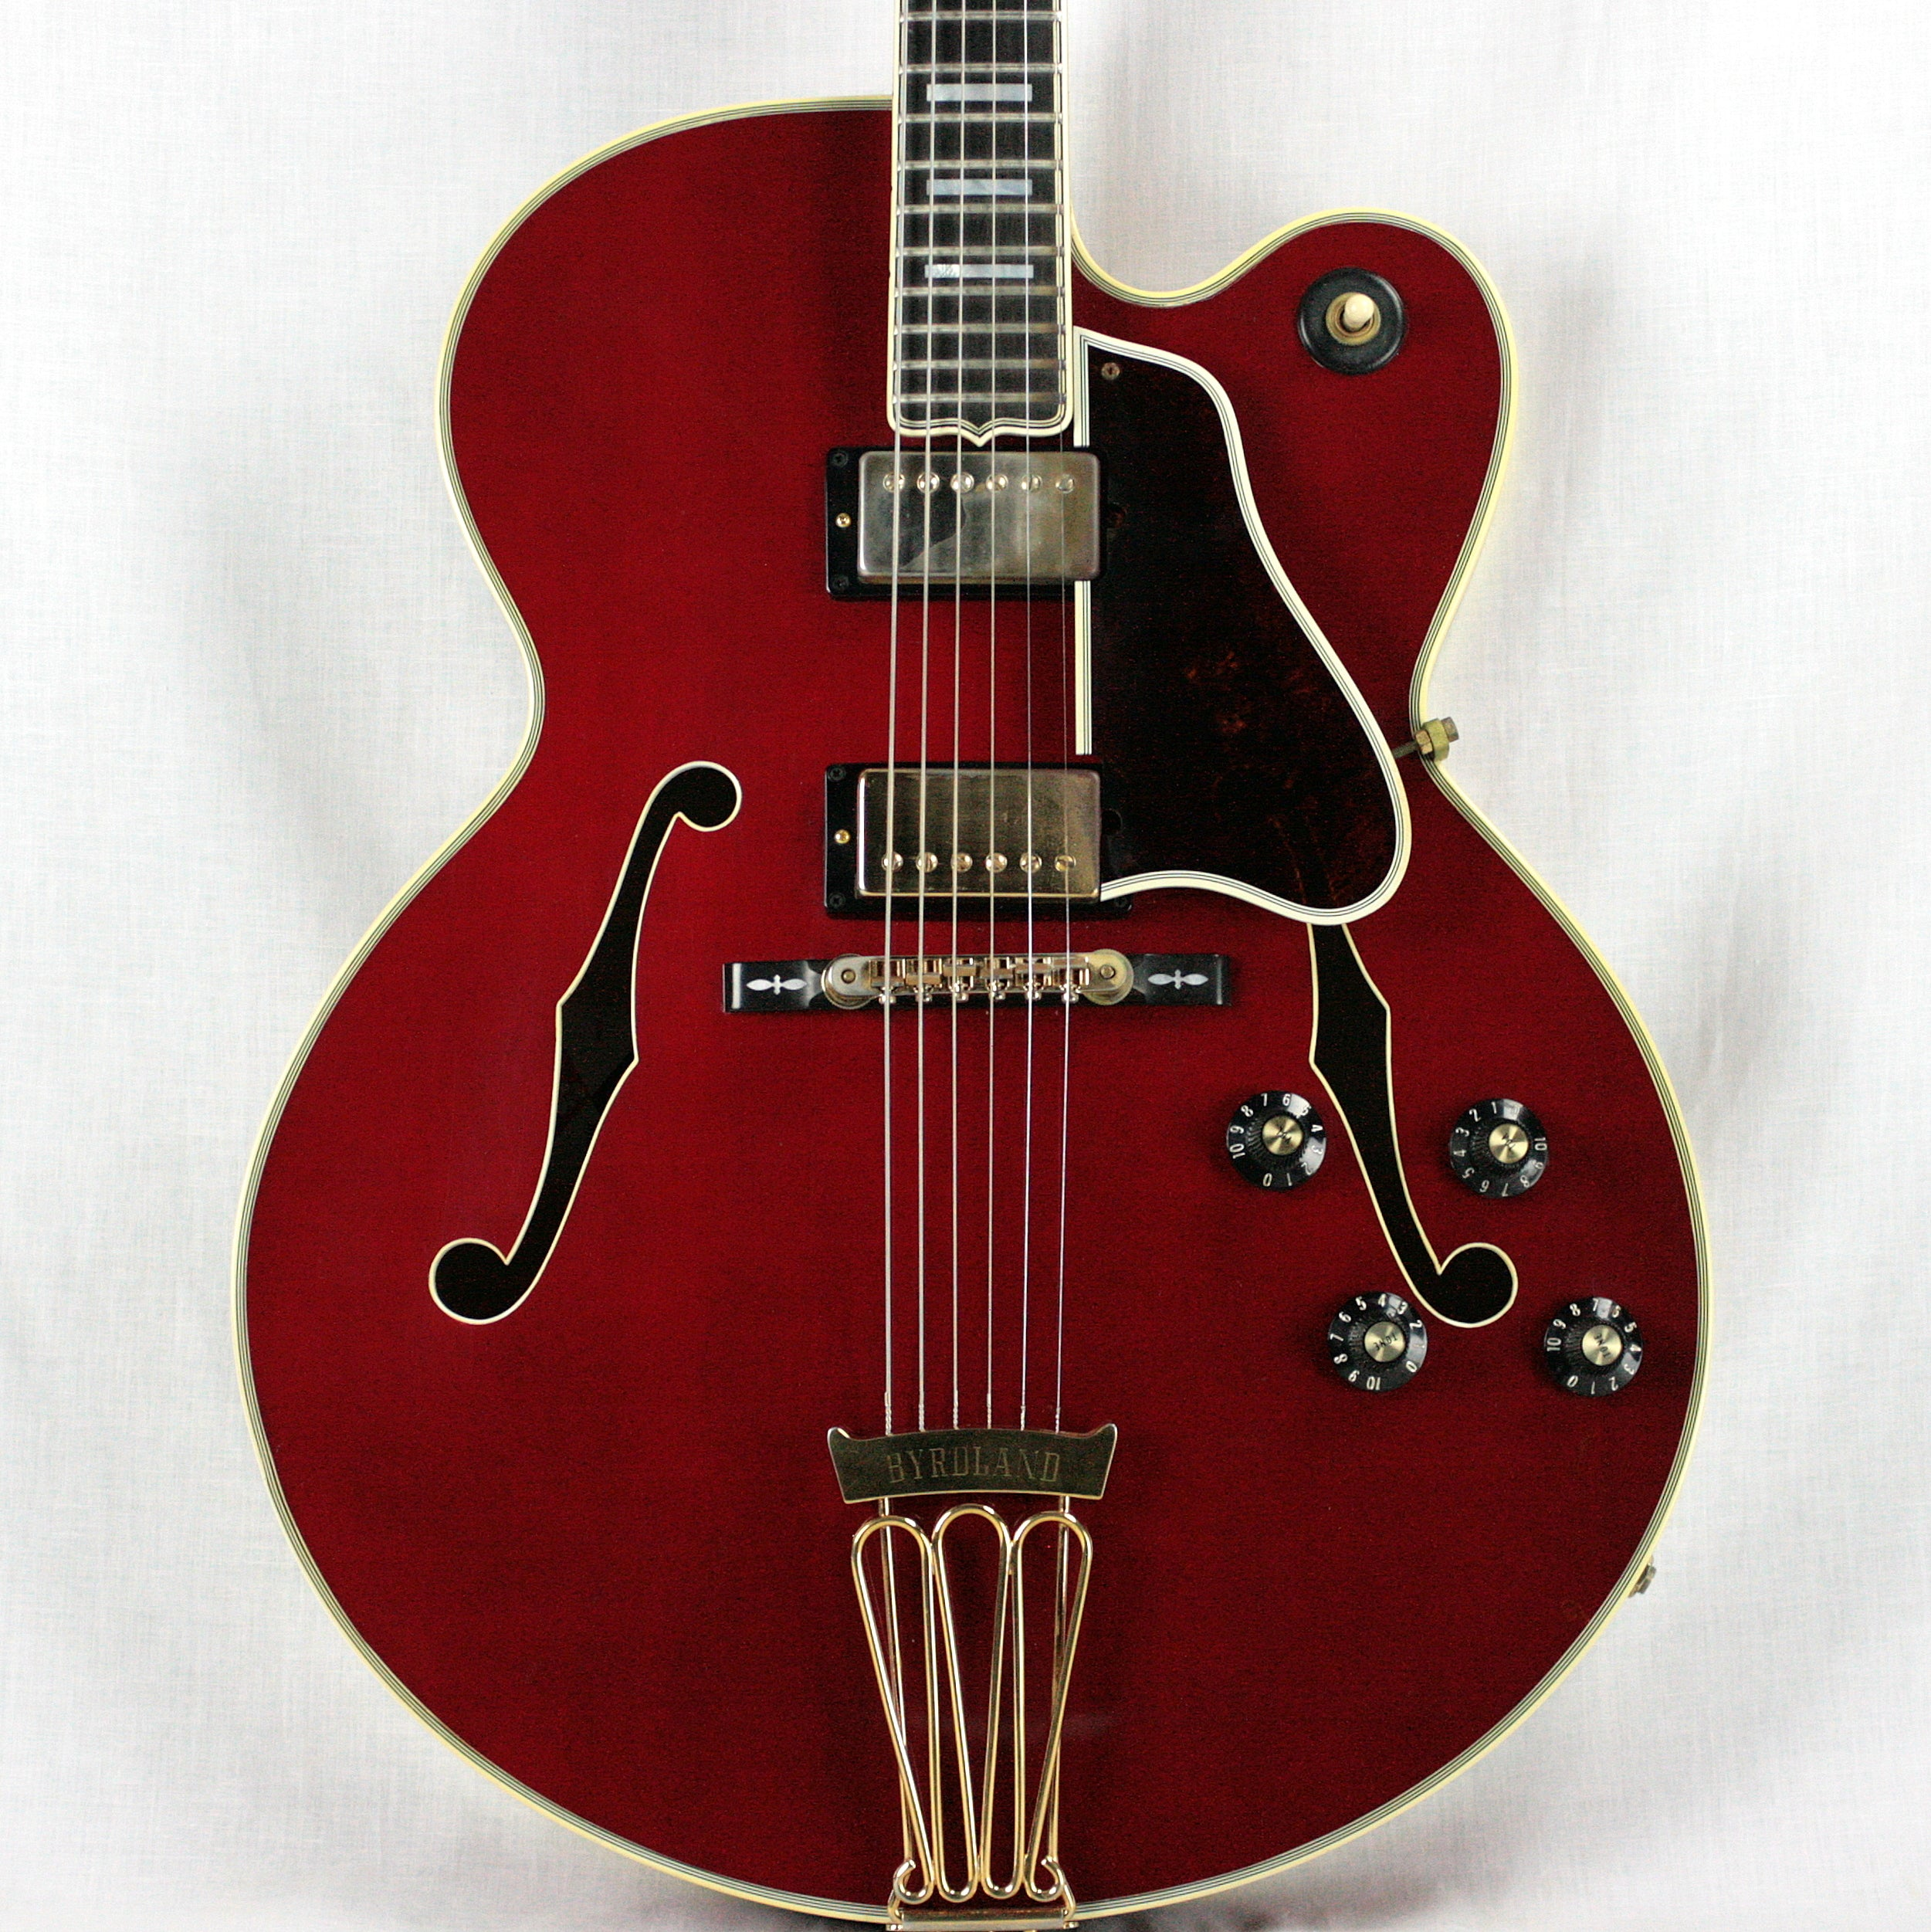 INCREDIBLY RARE 1980 Gibson Byrdland w/ F5 Mandolin Headstock! CHERRY RED! es335 one off